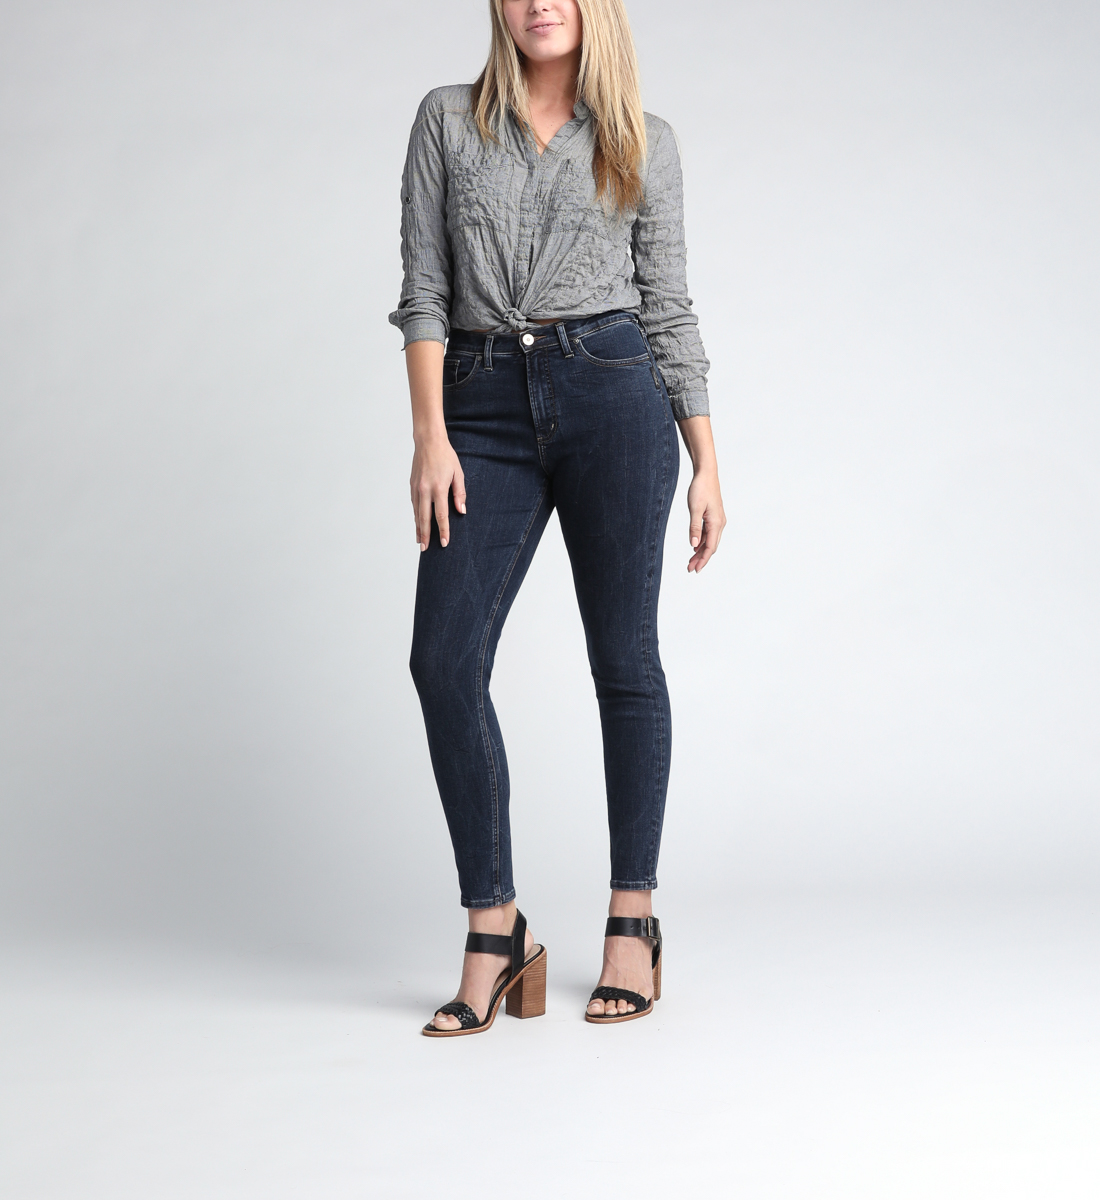 Calley Super High Rise Skinny Leg Jeans Alt Image 1